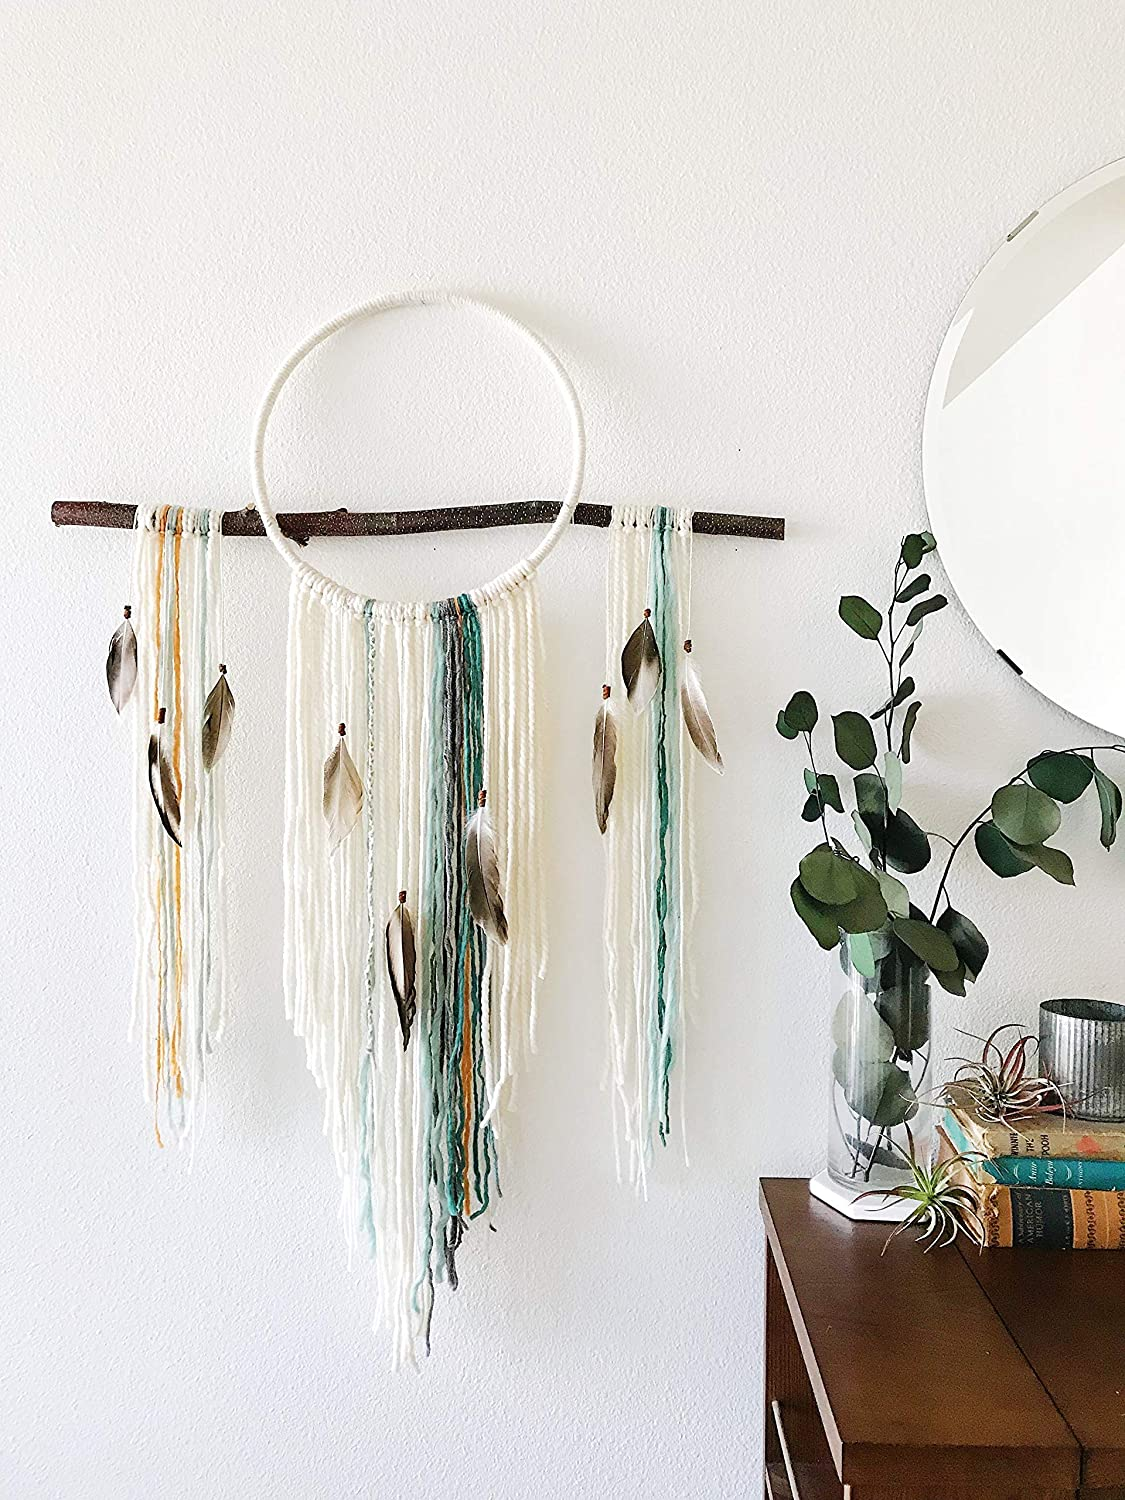 macrame wall art hanging in a home